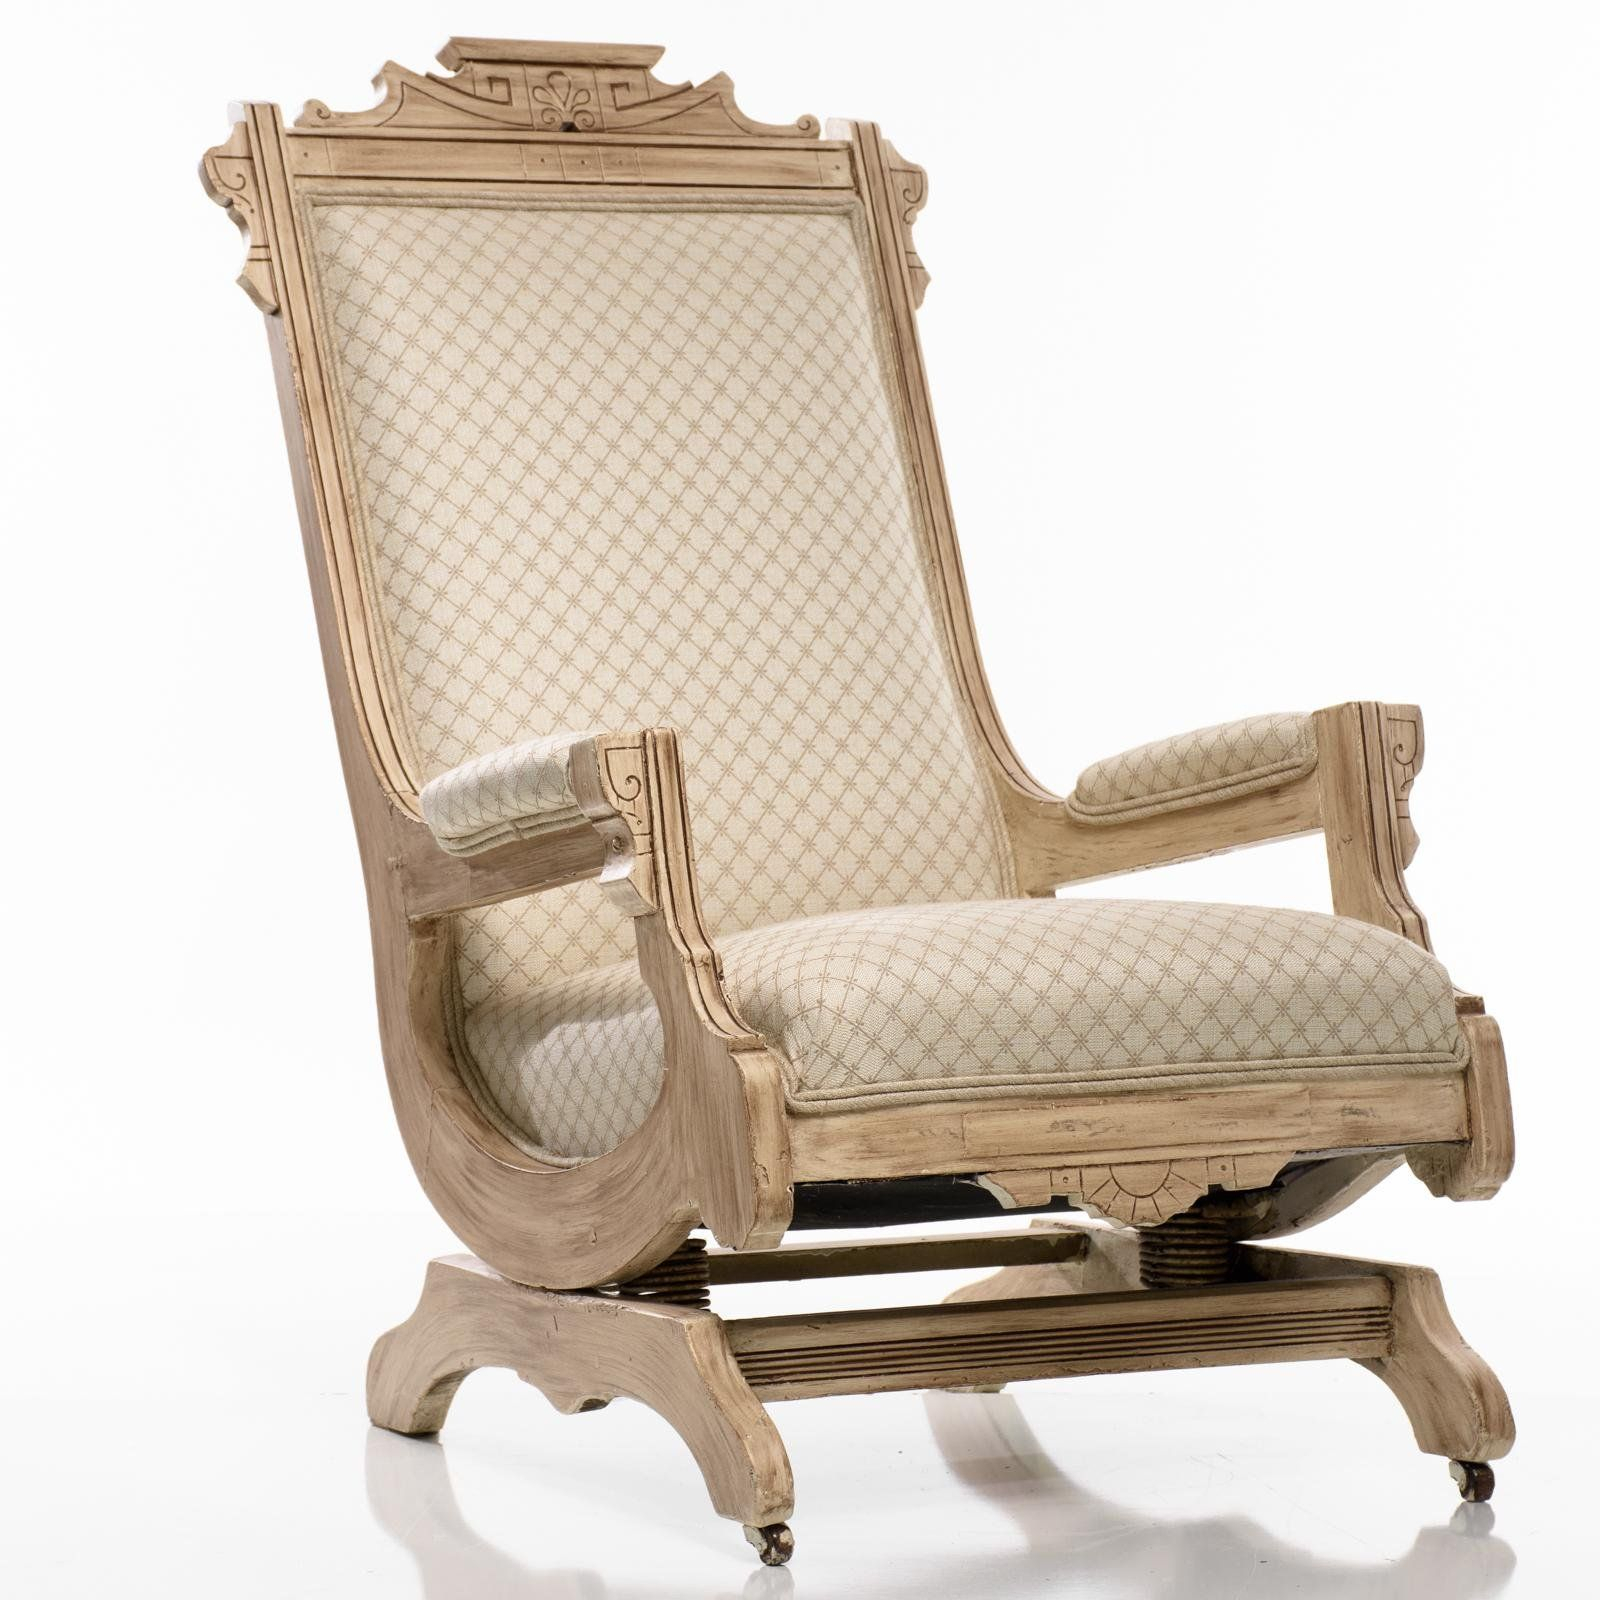 Antique Platform Rocking Chair In 2019 | Vintage Obsession For Beige Fabric And Cherry Wood Rocking Chairs (View 11 of 20)